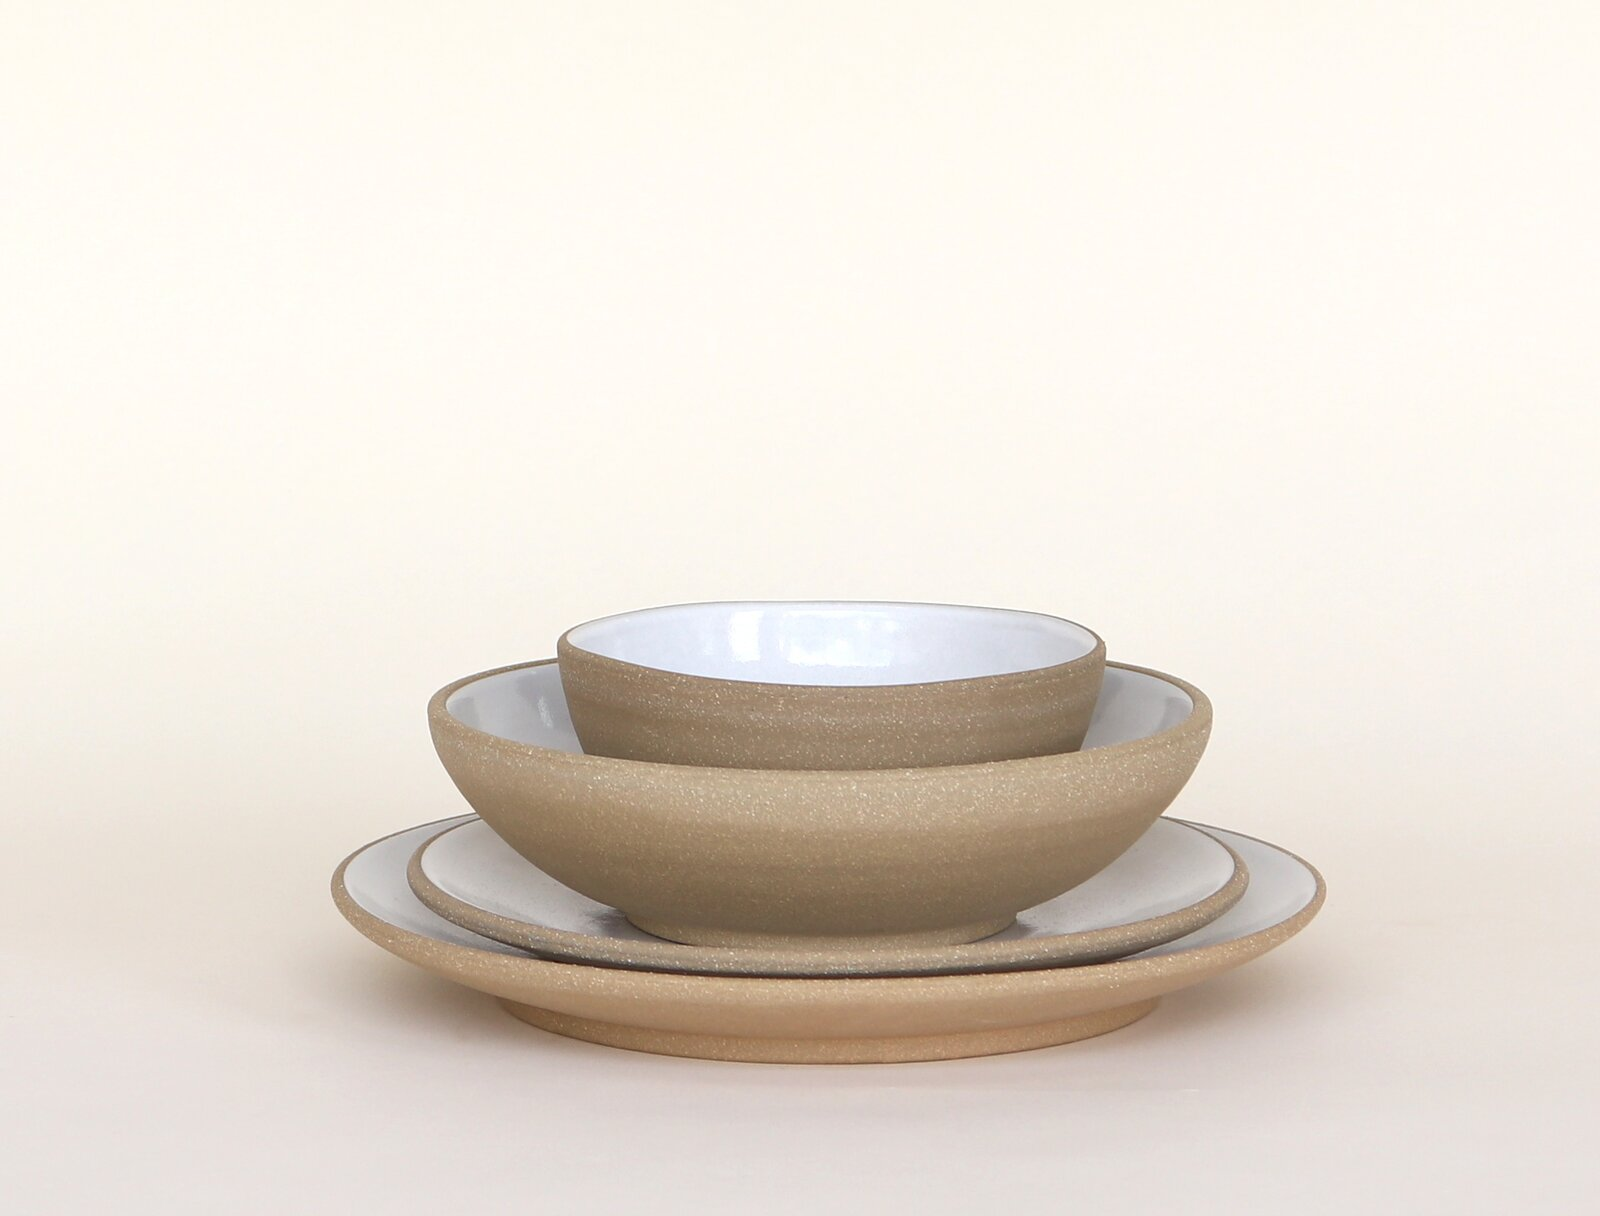 Dining Room Jono Pandolfi's Coupe four-piece setting in Toasted Clay is his most popular setting, and costs $140 for four pieces including an entrée plate, salad plate, cereal bowl, and an Alaska (soup/salad) bowl.   Photo 9 of 9 in How Much Should You Spend on Dinnerware?